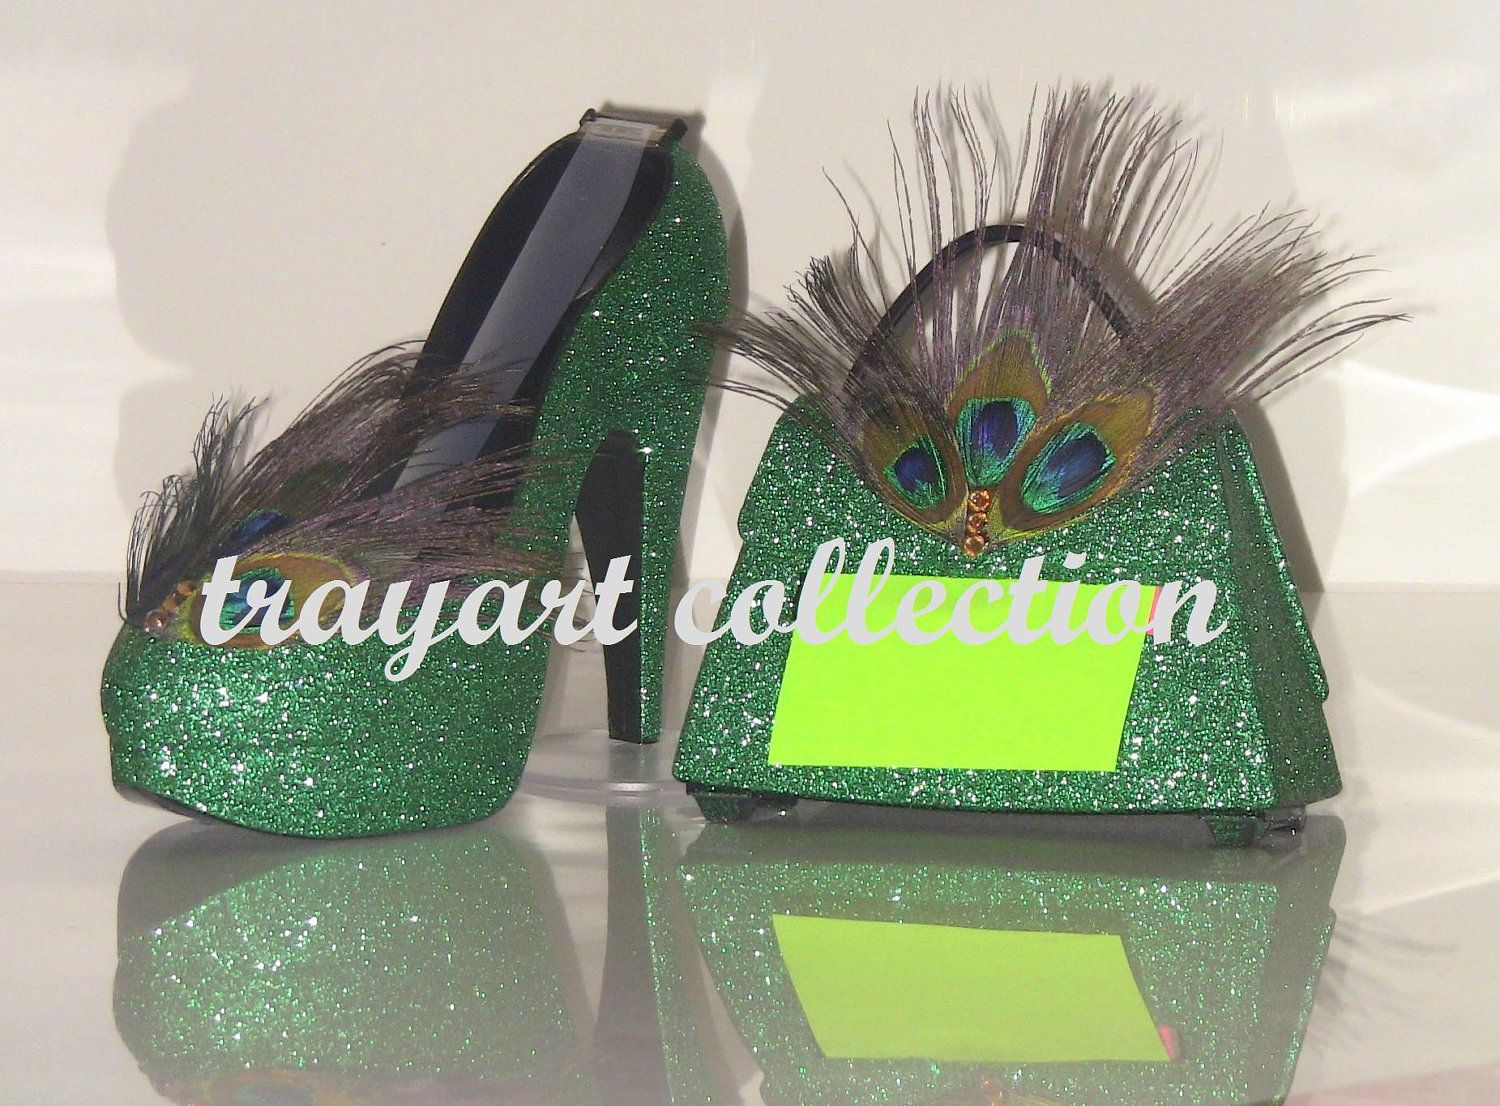 Emerald Green Pea Stiletto Platform High Heel Shoe Tape Dispenser Purse Pop Up Note Office Supplies Trayart Collection 54 00 Via Etsy